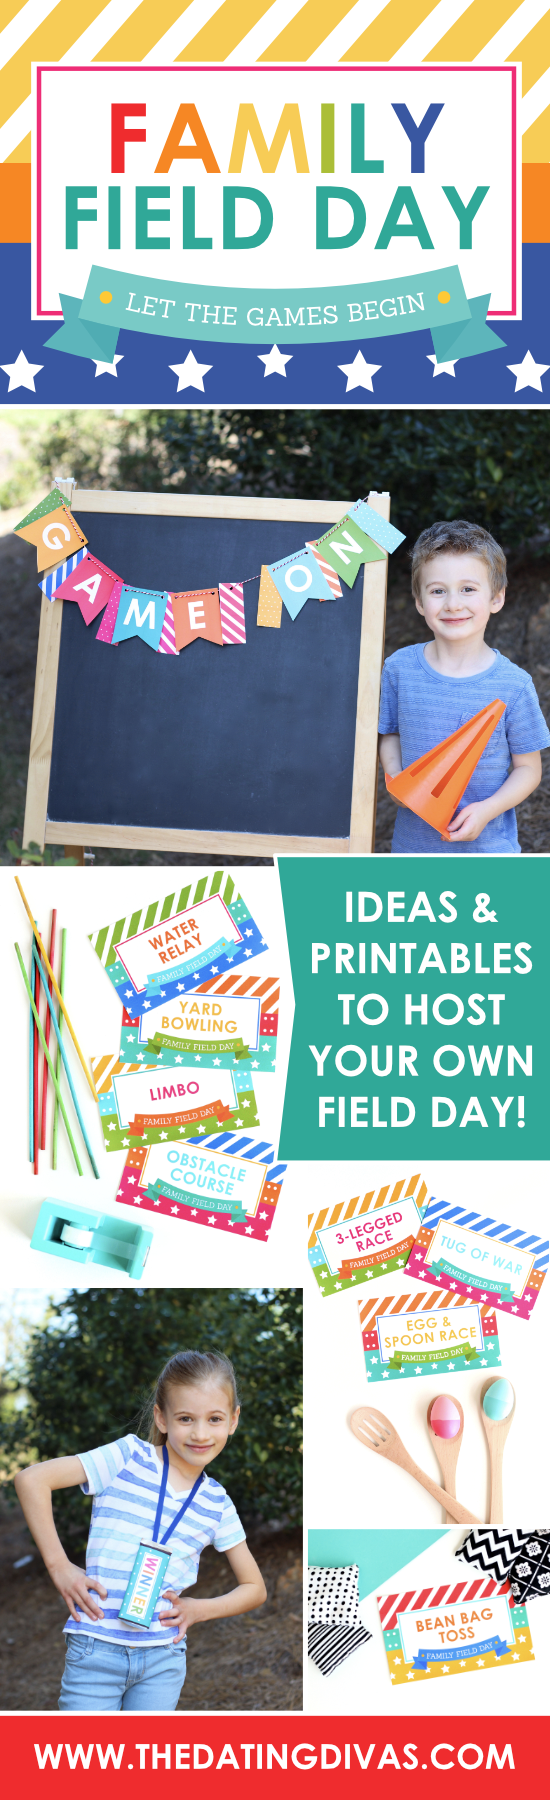 Have some summer fun with a Family Field Day! #TheDatingDivas #FieldDayGames #thedatingdivas